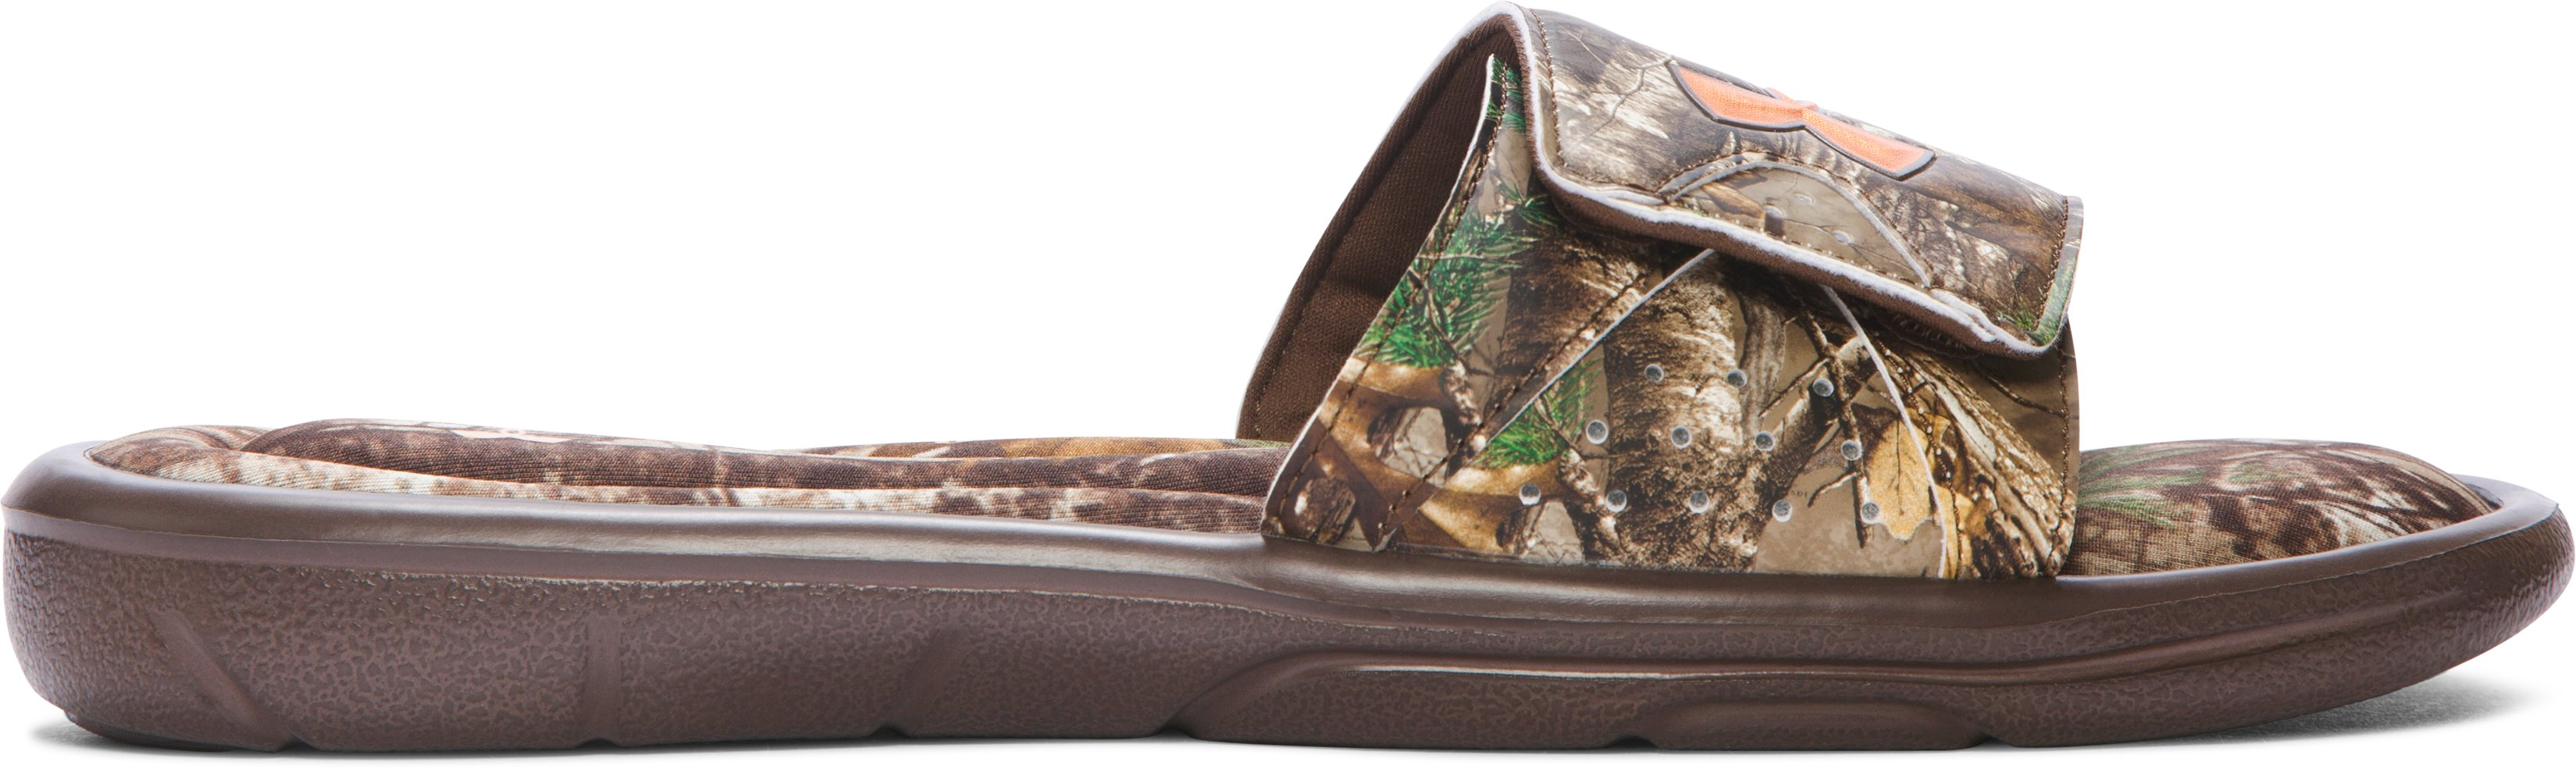 Men's UA Ignite Camo Slide Sandals 1 Color $29.99